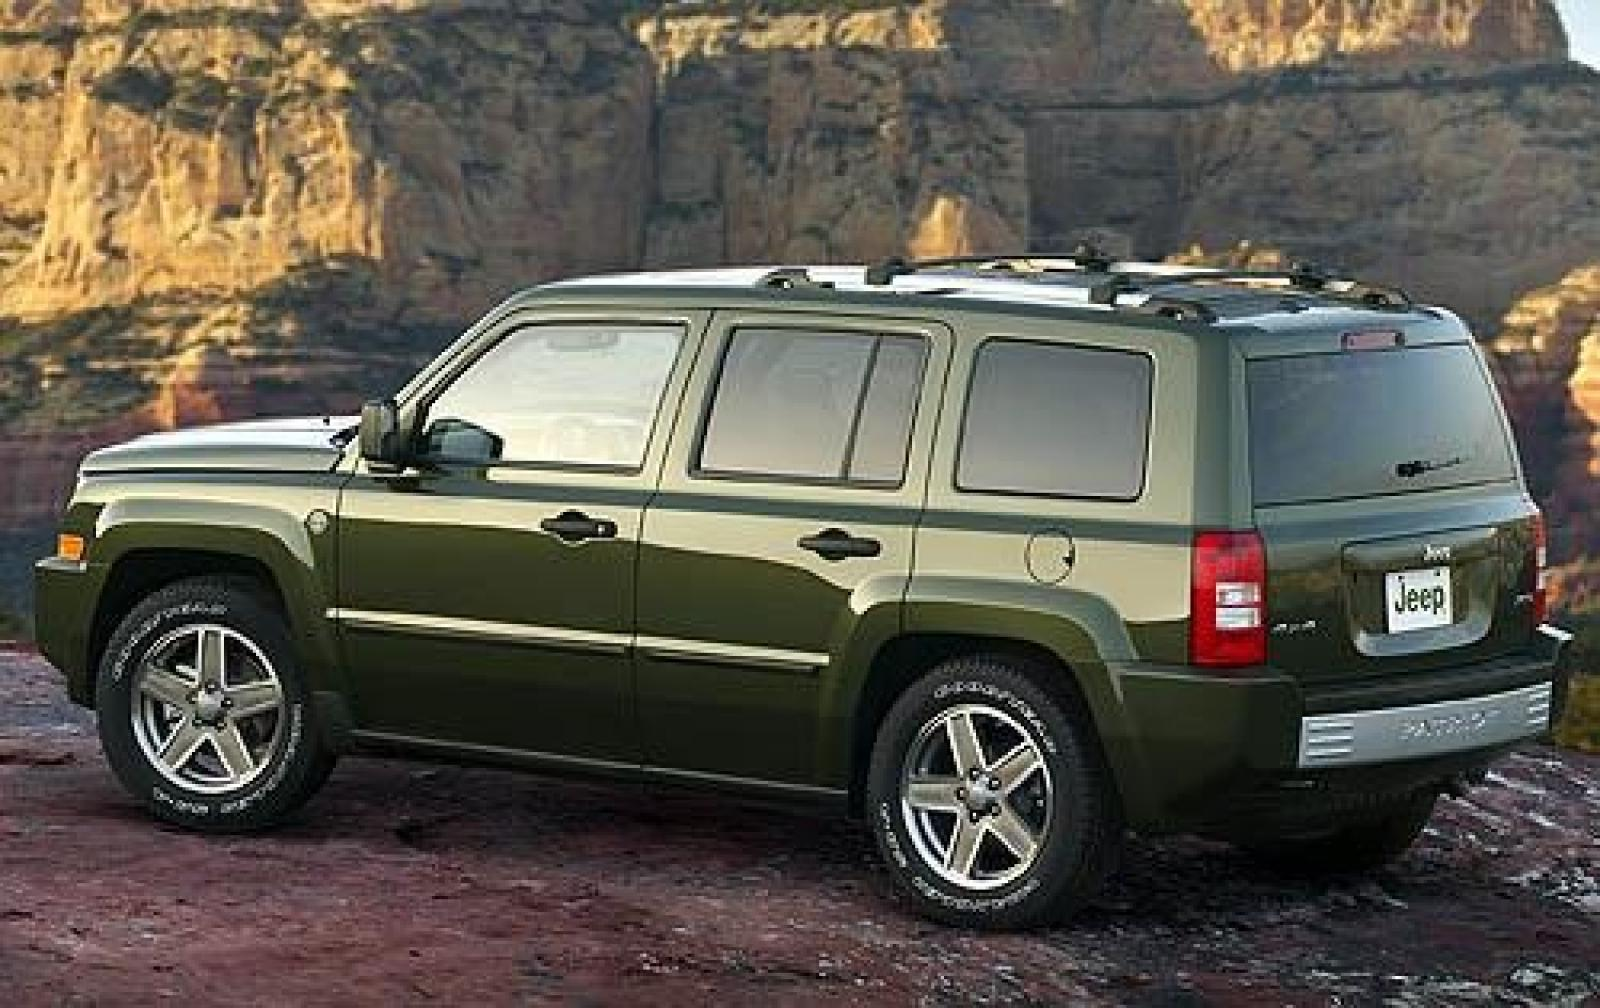 2009 jeep patriot information and photos zombiedrive. Black Bedroom Furniture Sets. Home Design Ideas